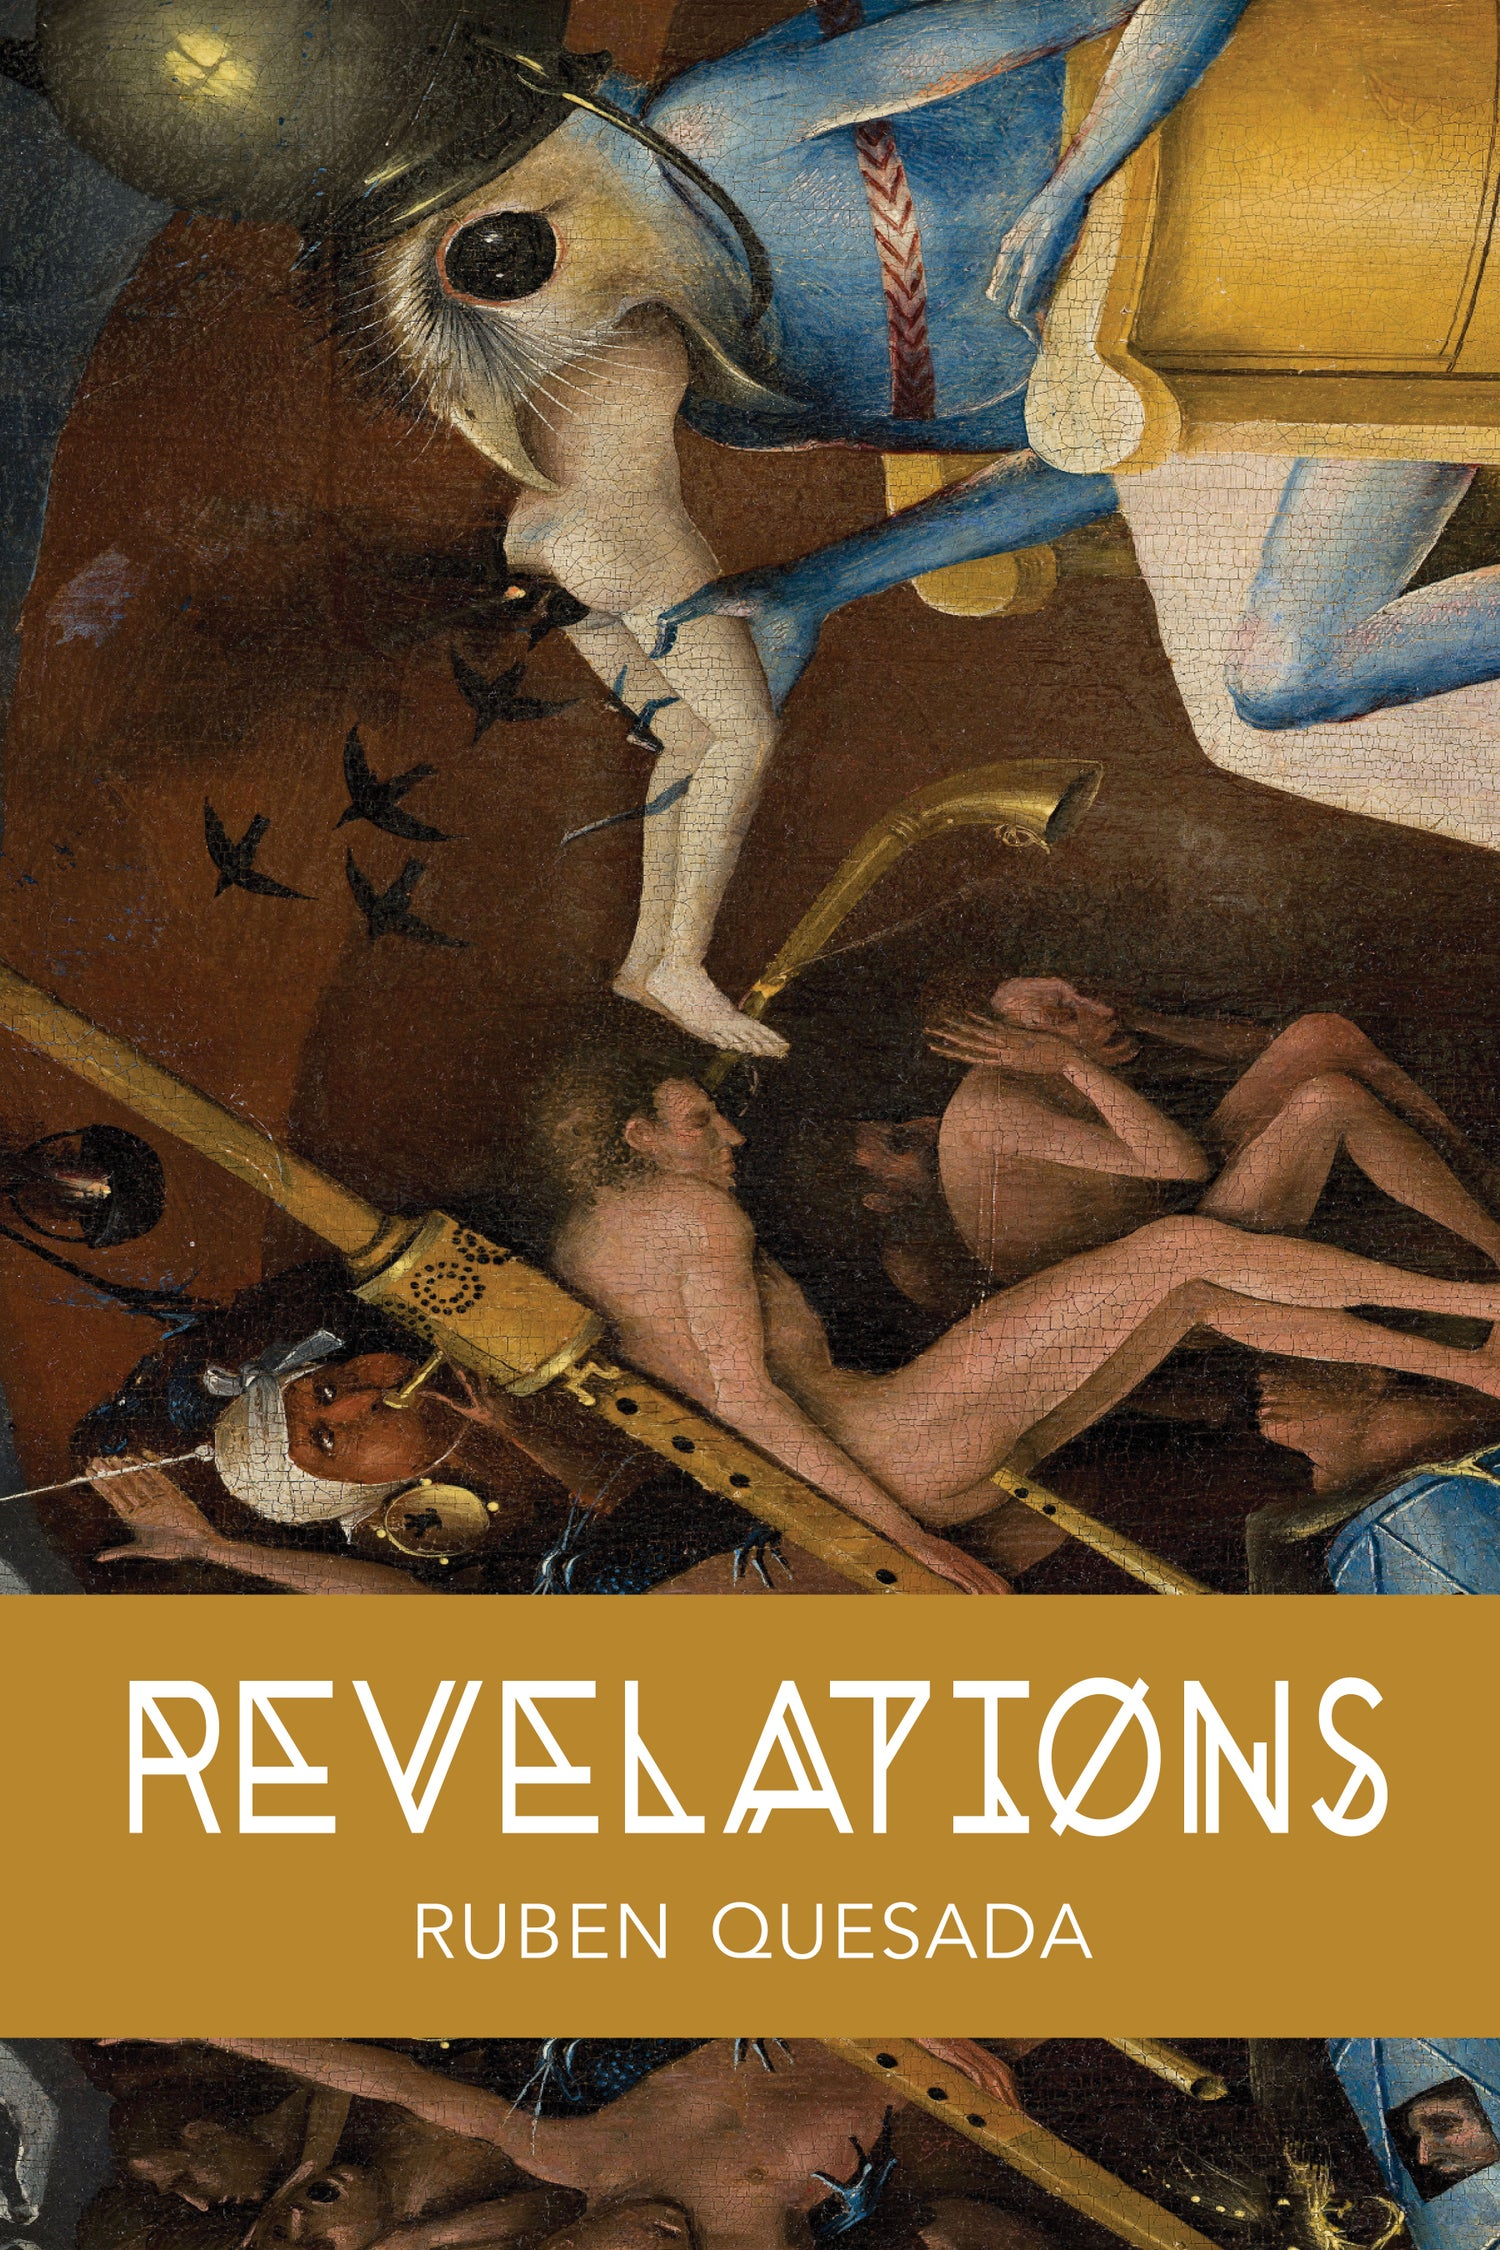 Image of Revelations by Ruben Quesada